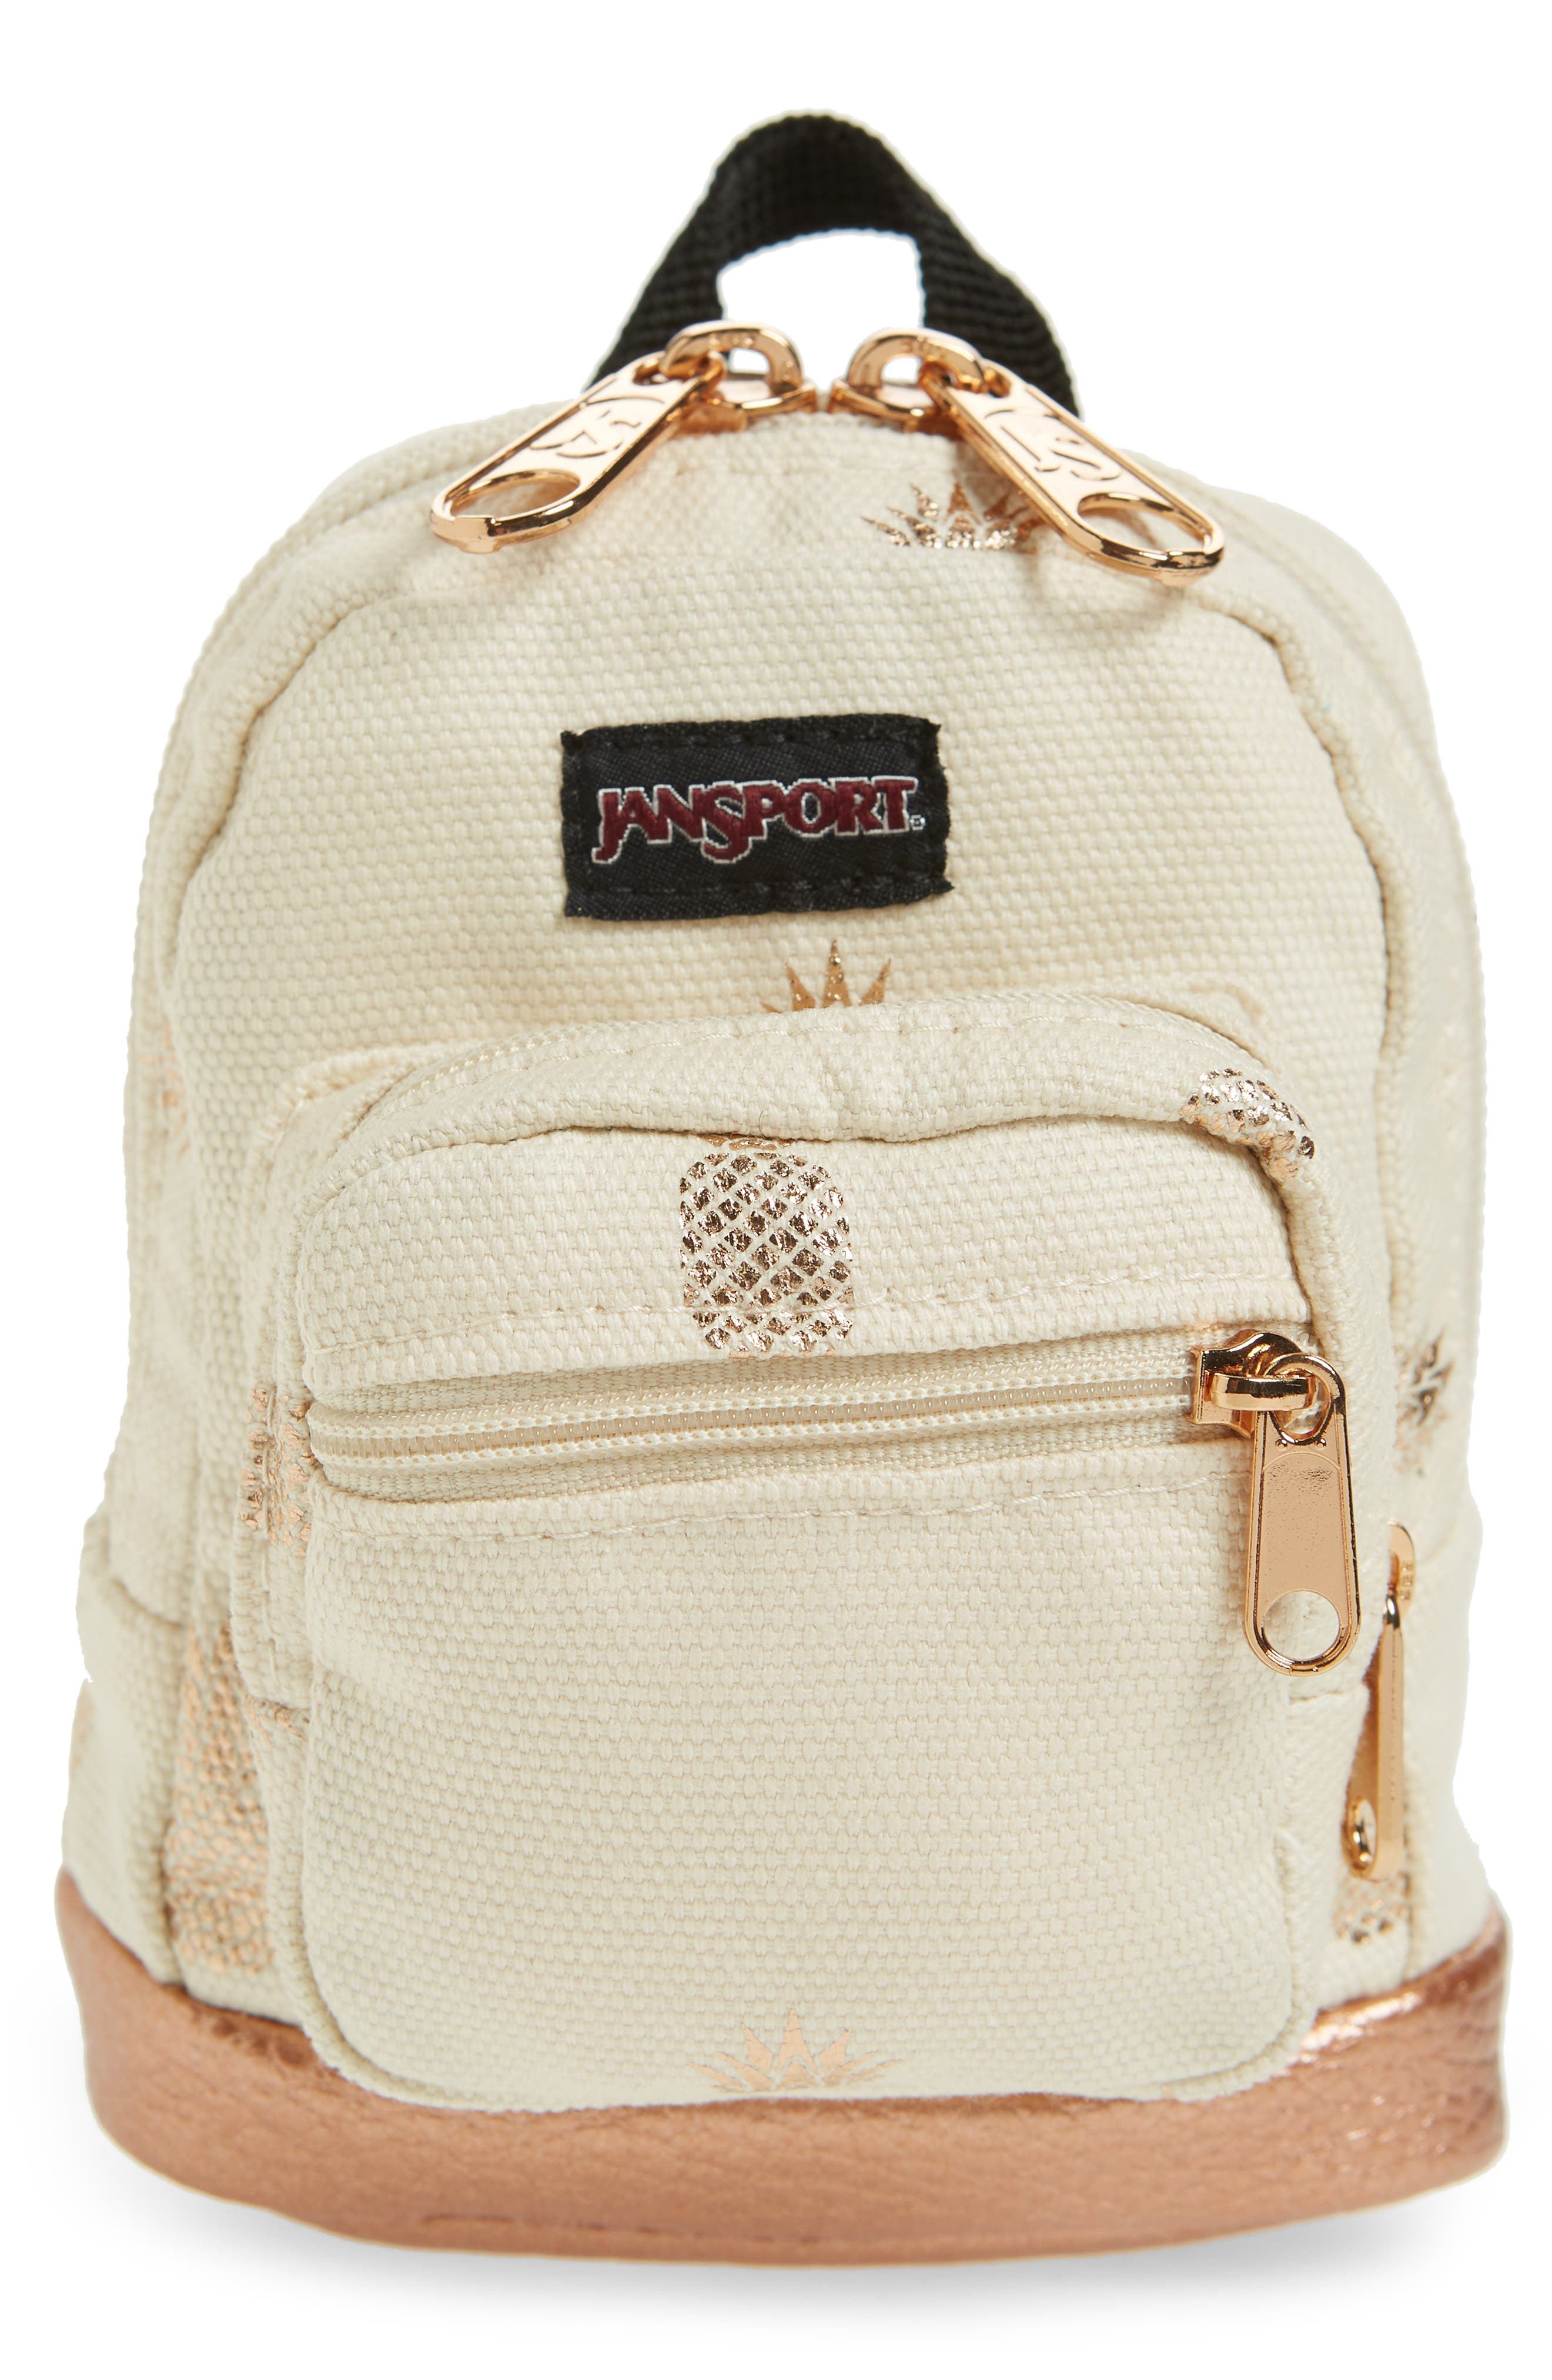 JANSPORT RIGHT POUCH MINI BACKPACK - BEIGE